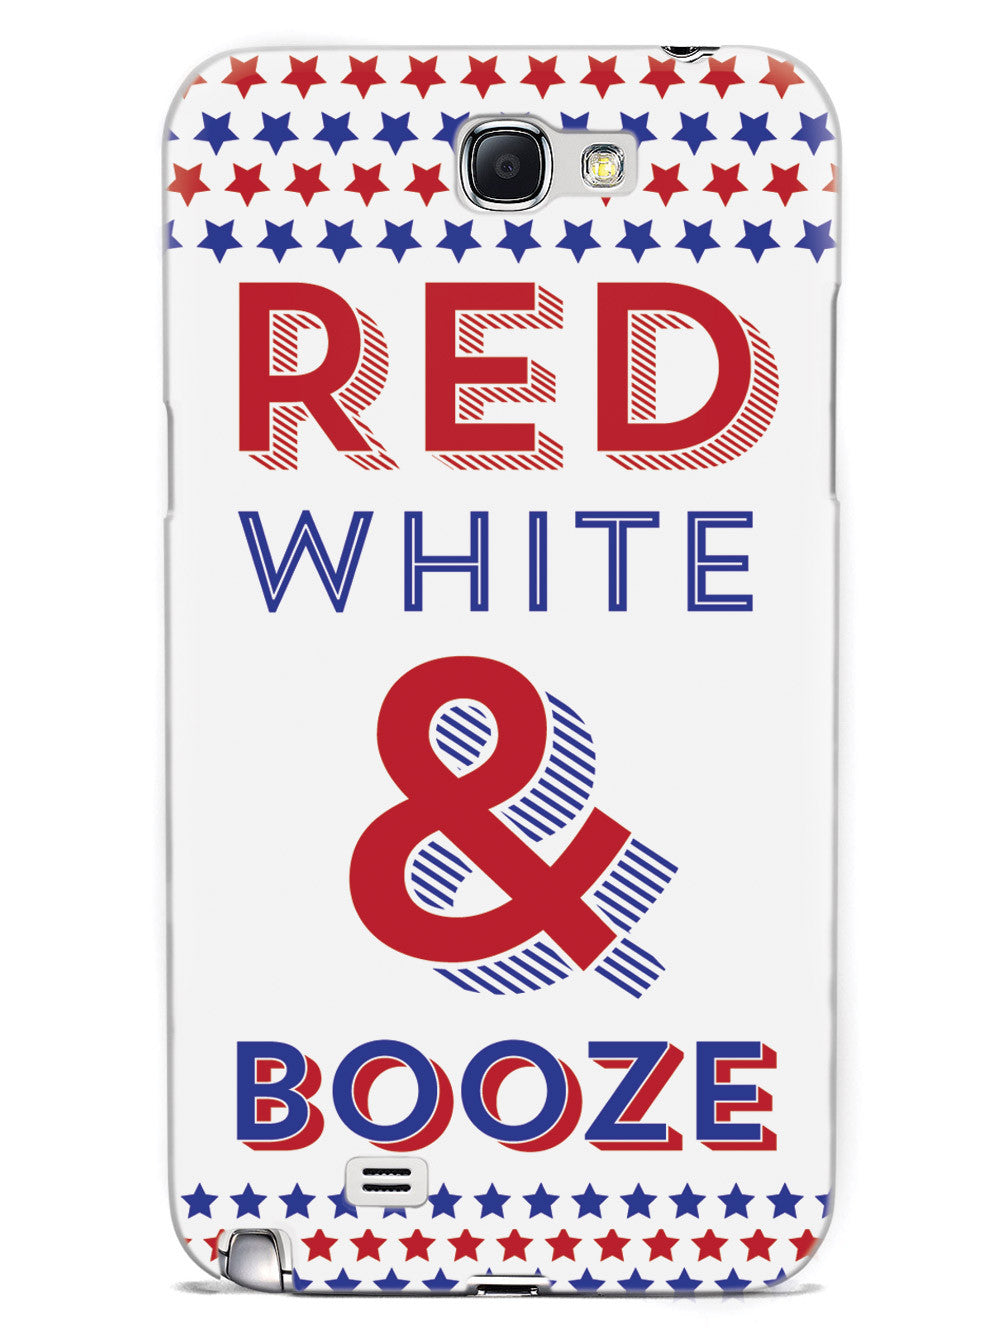 Red, White & Booze - Patriotic Case